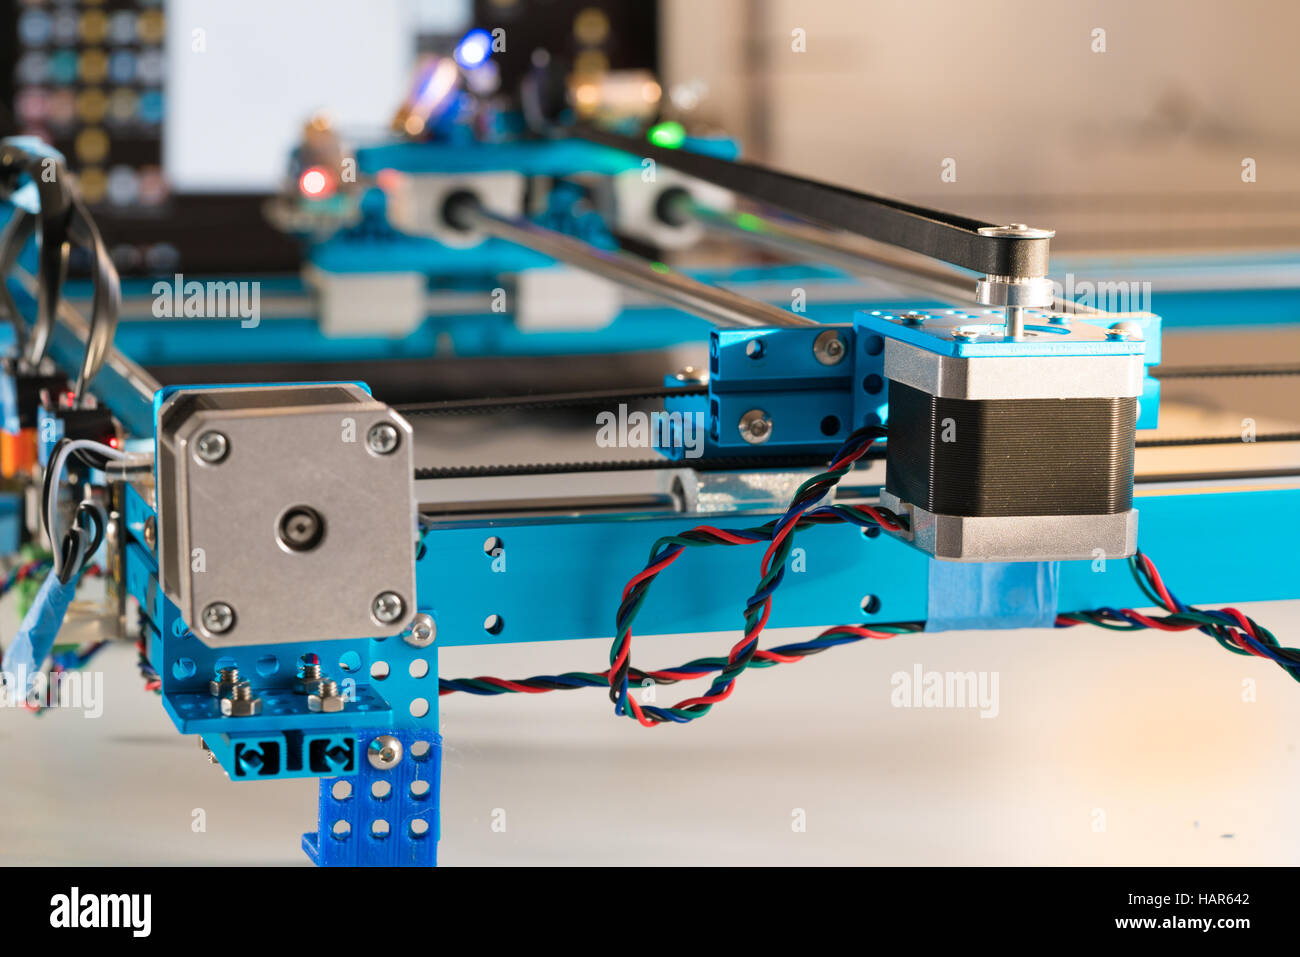 Student Physical Lab Stock Photos Amp Student Physical Lab Stock Images